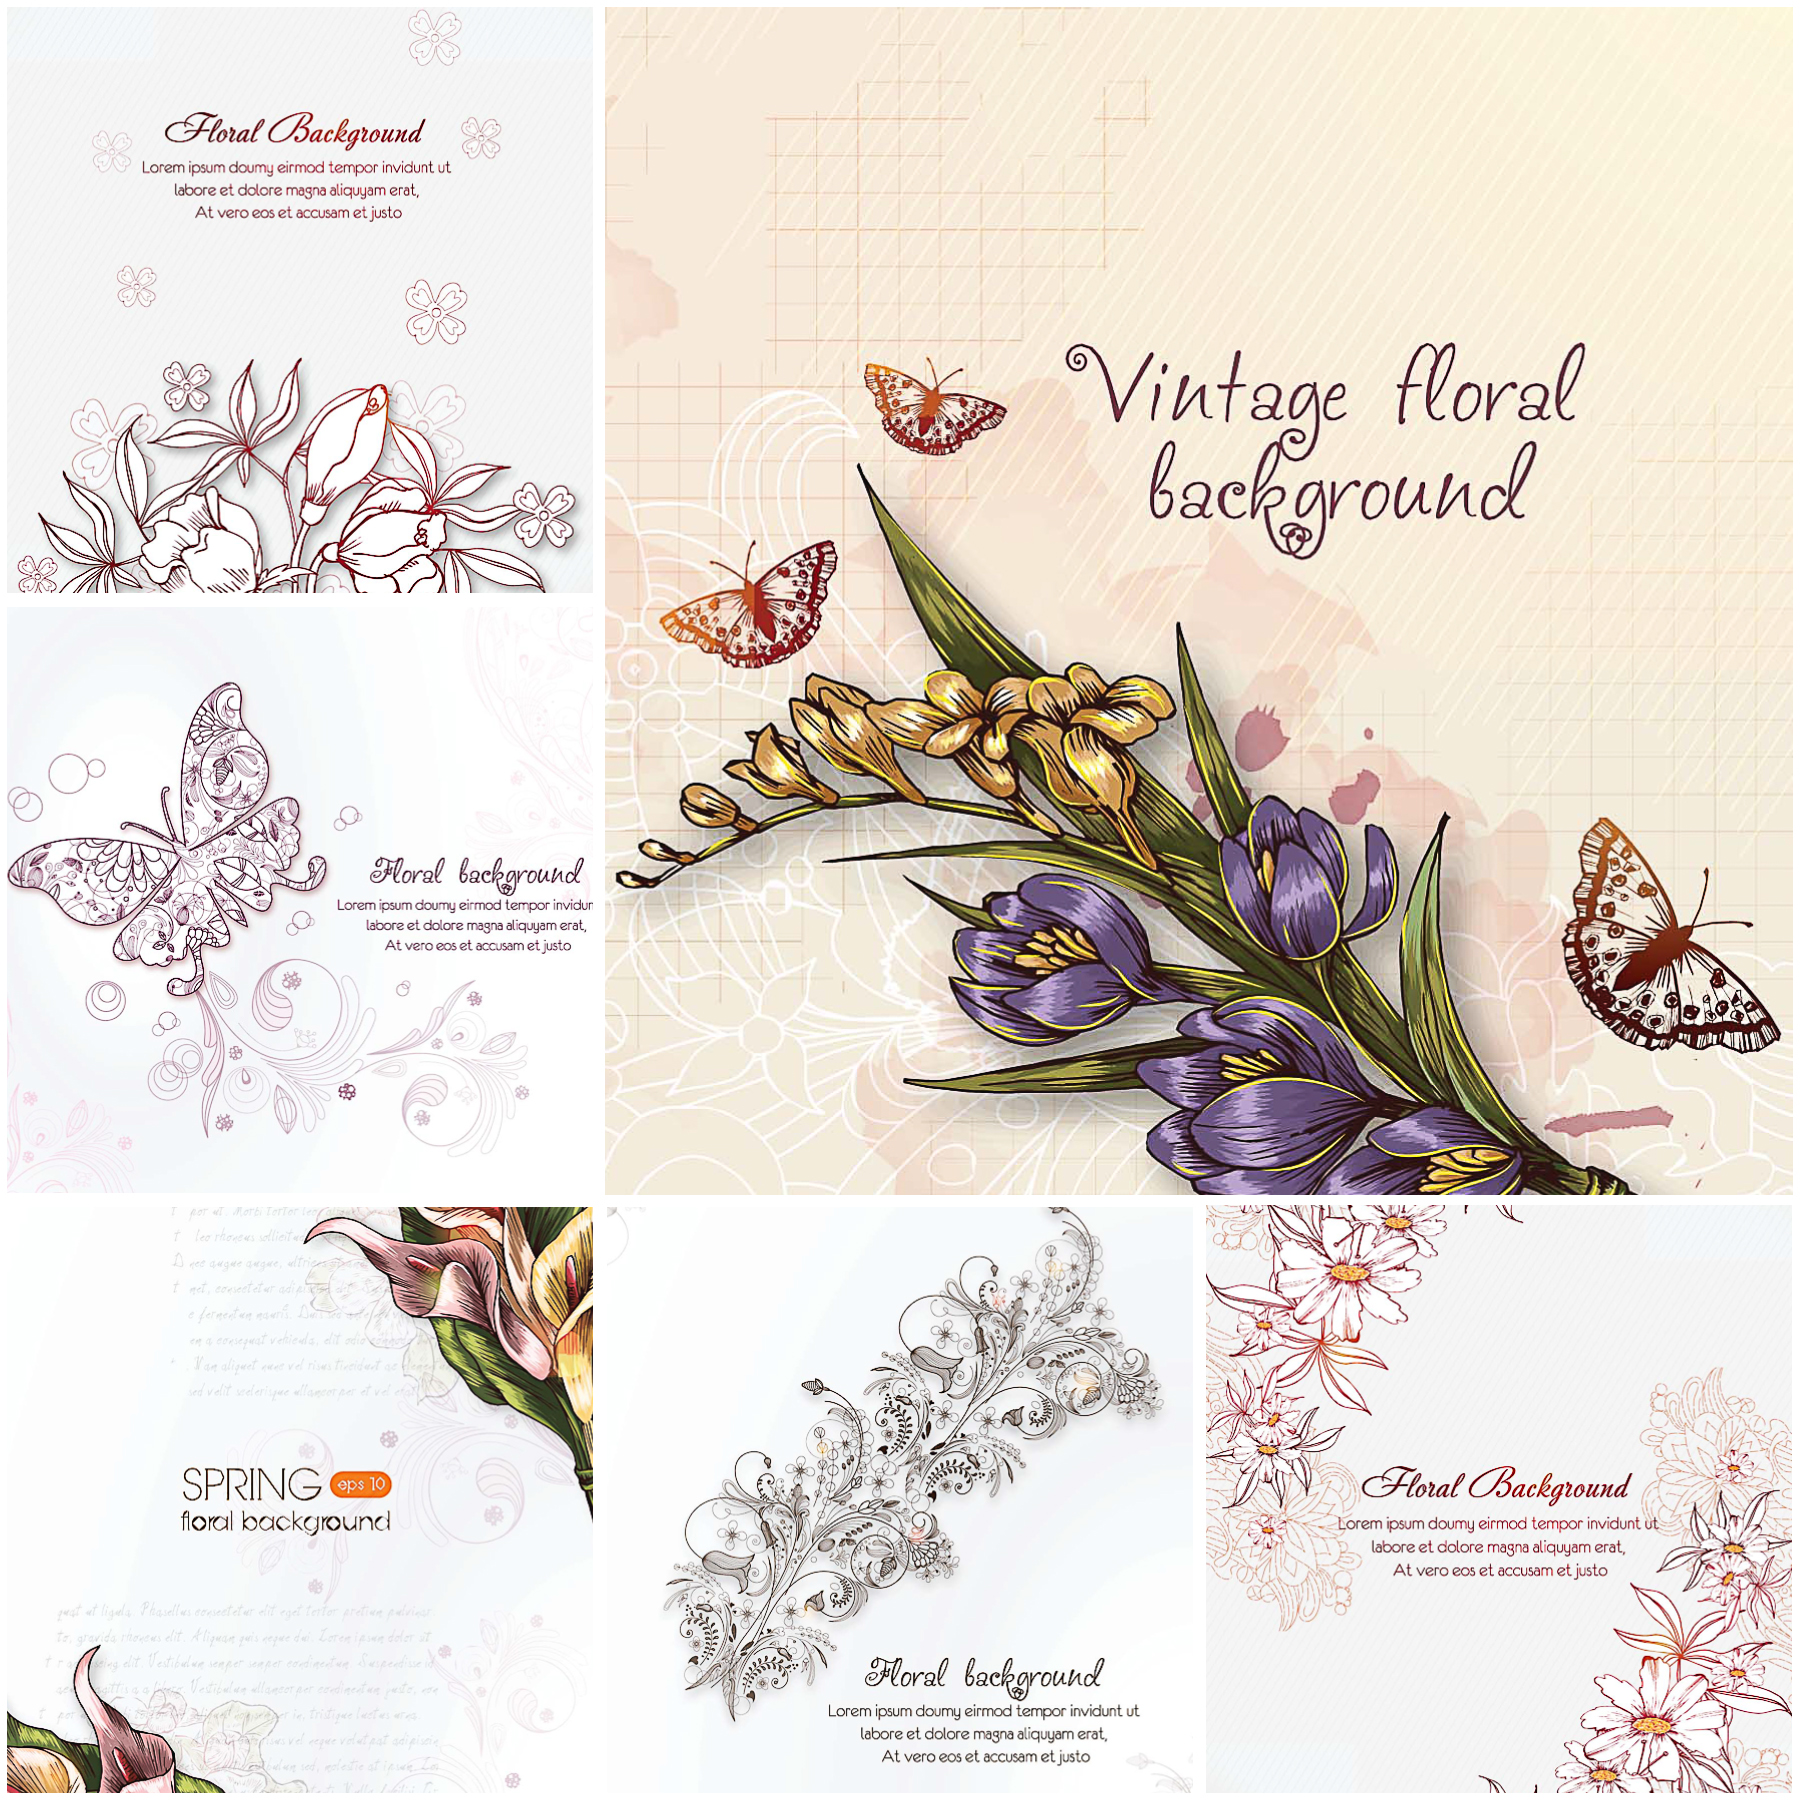 Free download flower background clipart transparent download Vintage floral background set   Free download clipart transparent download